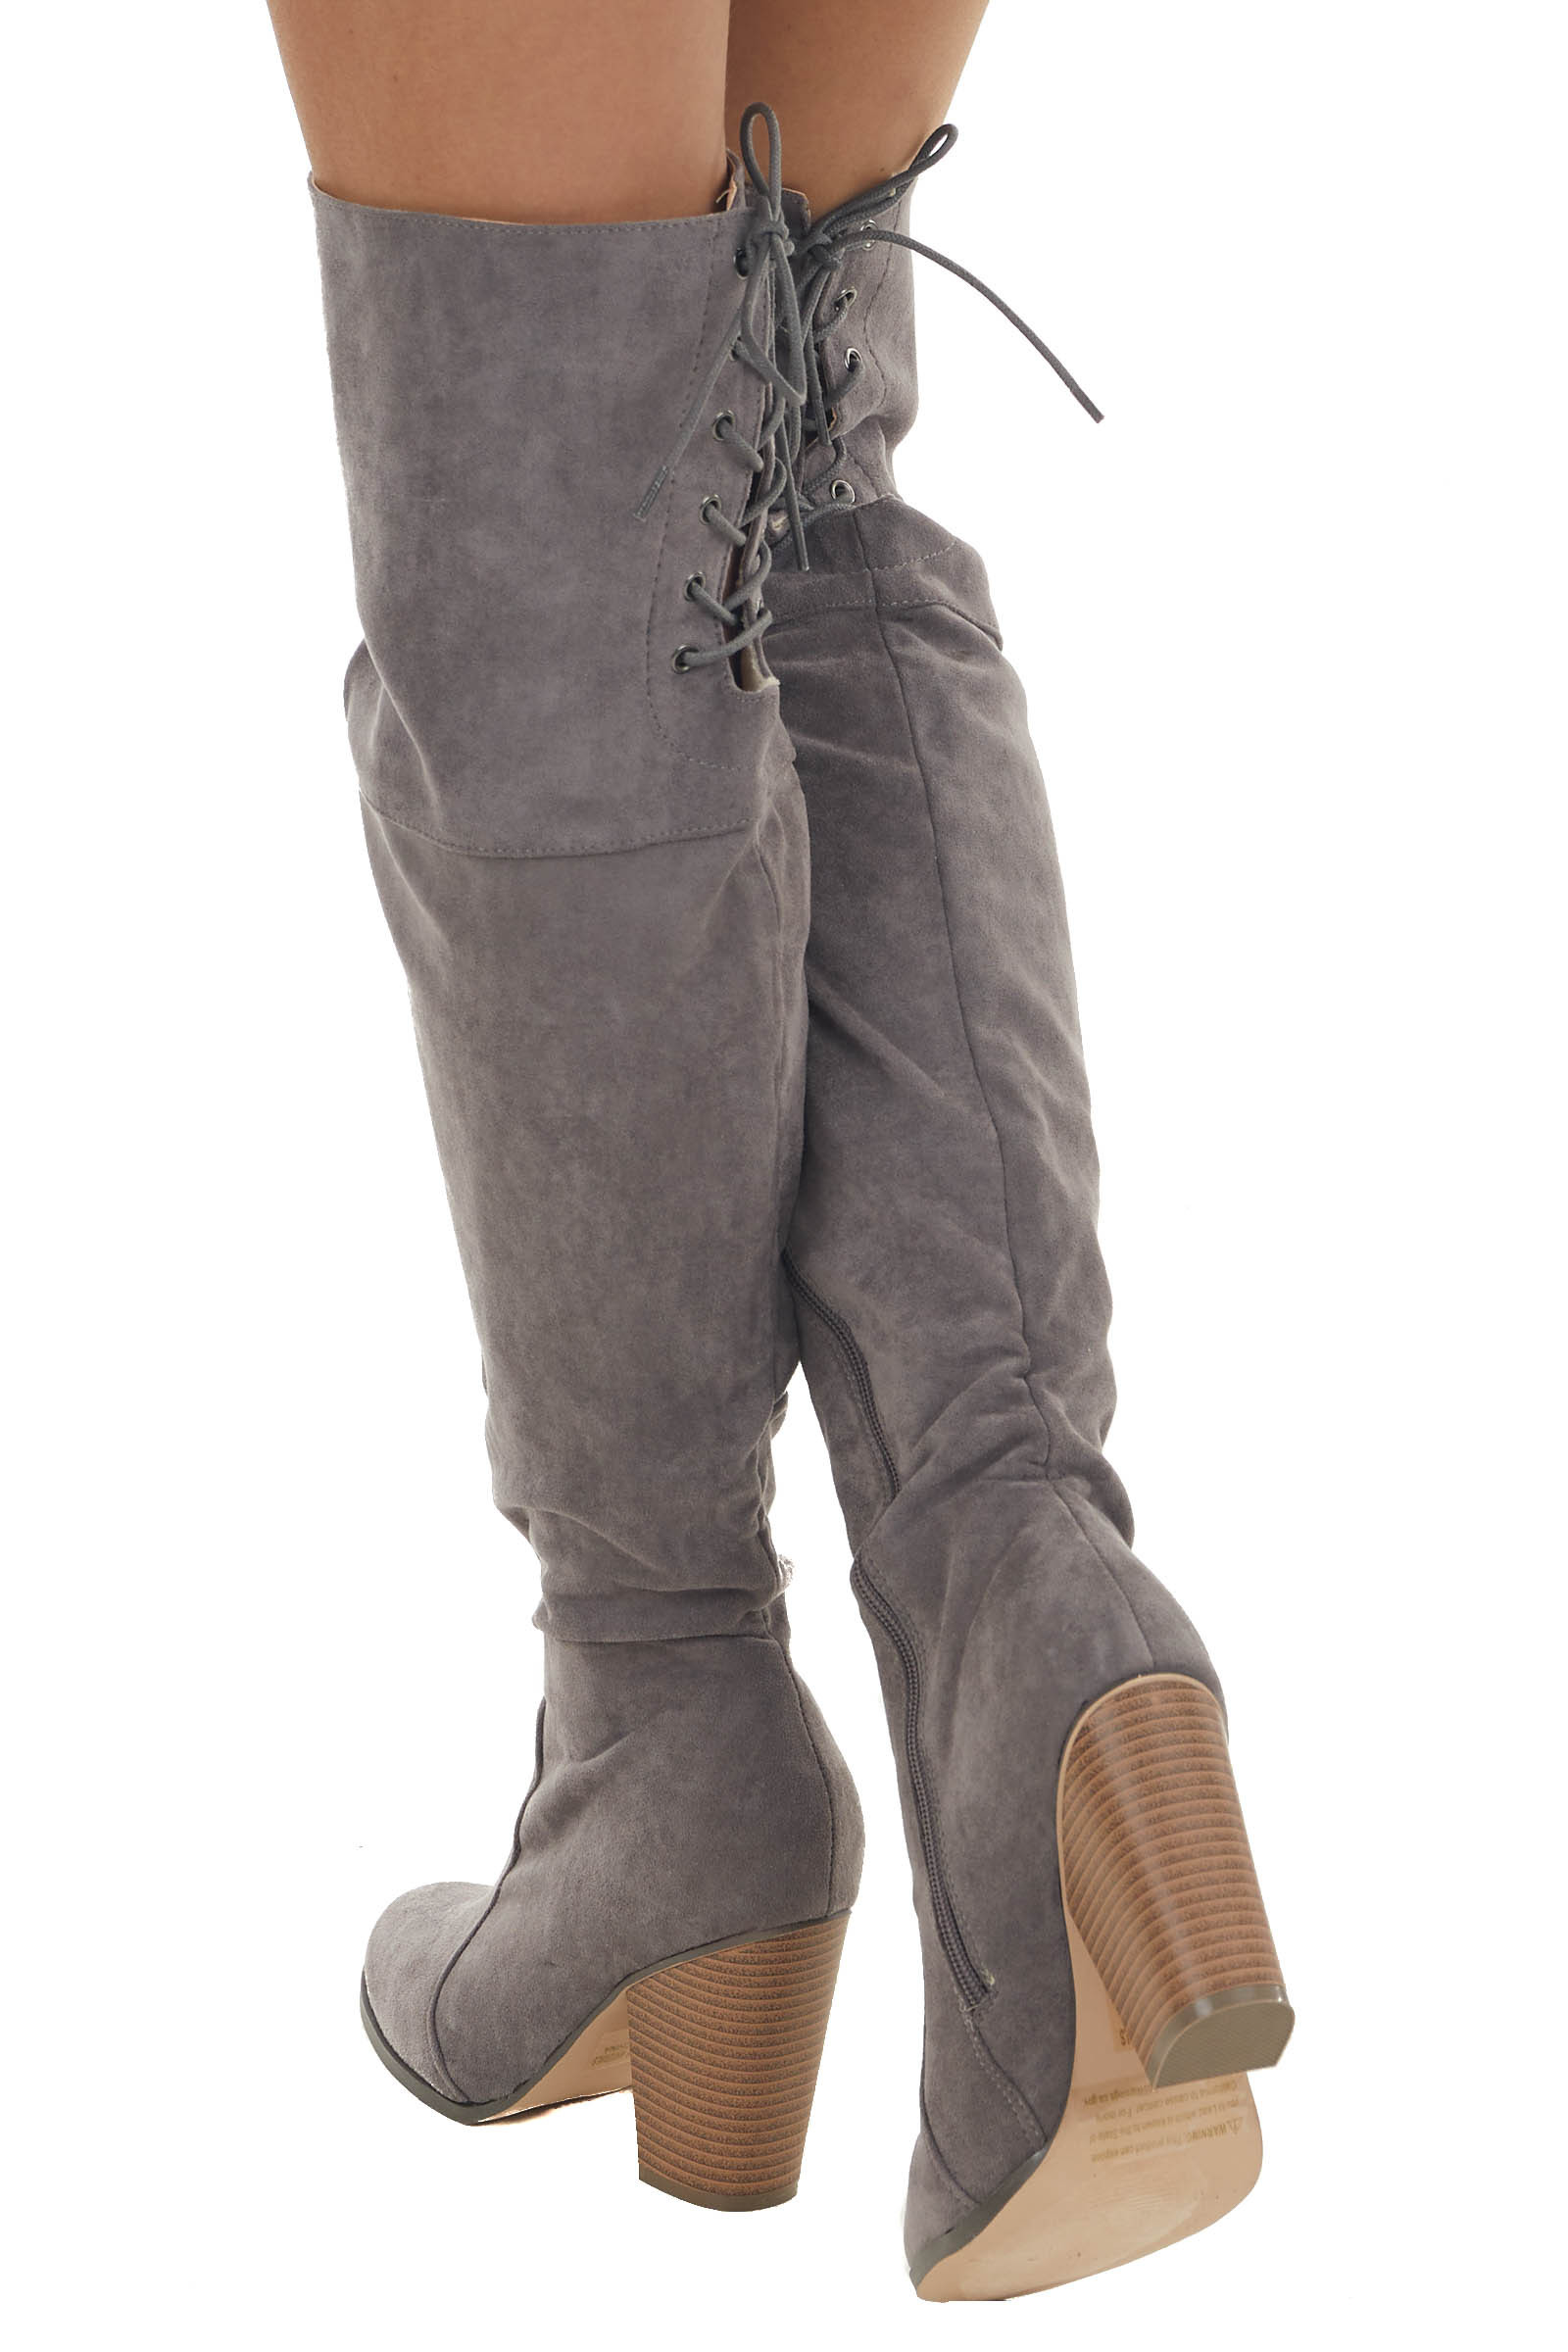 Stone Grey Faux Suede Lace Up Back Tall Boots